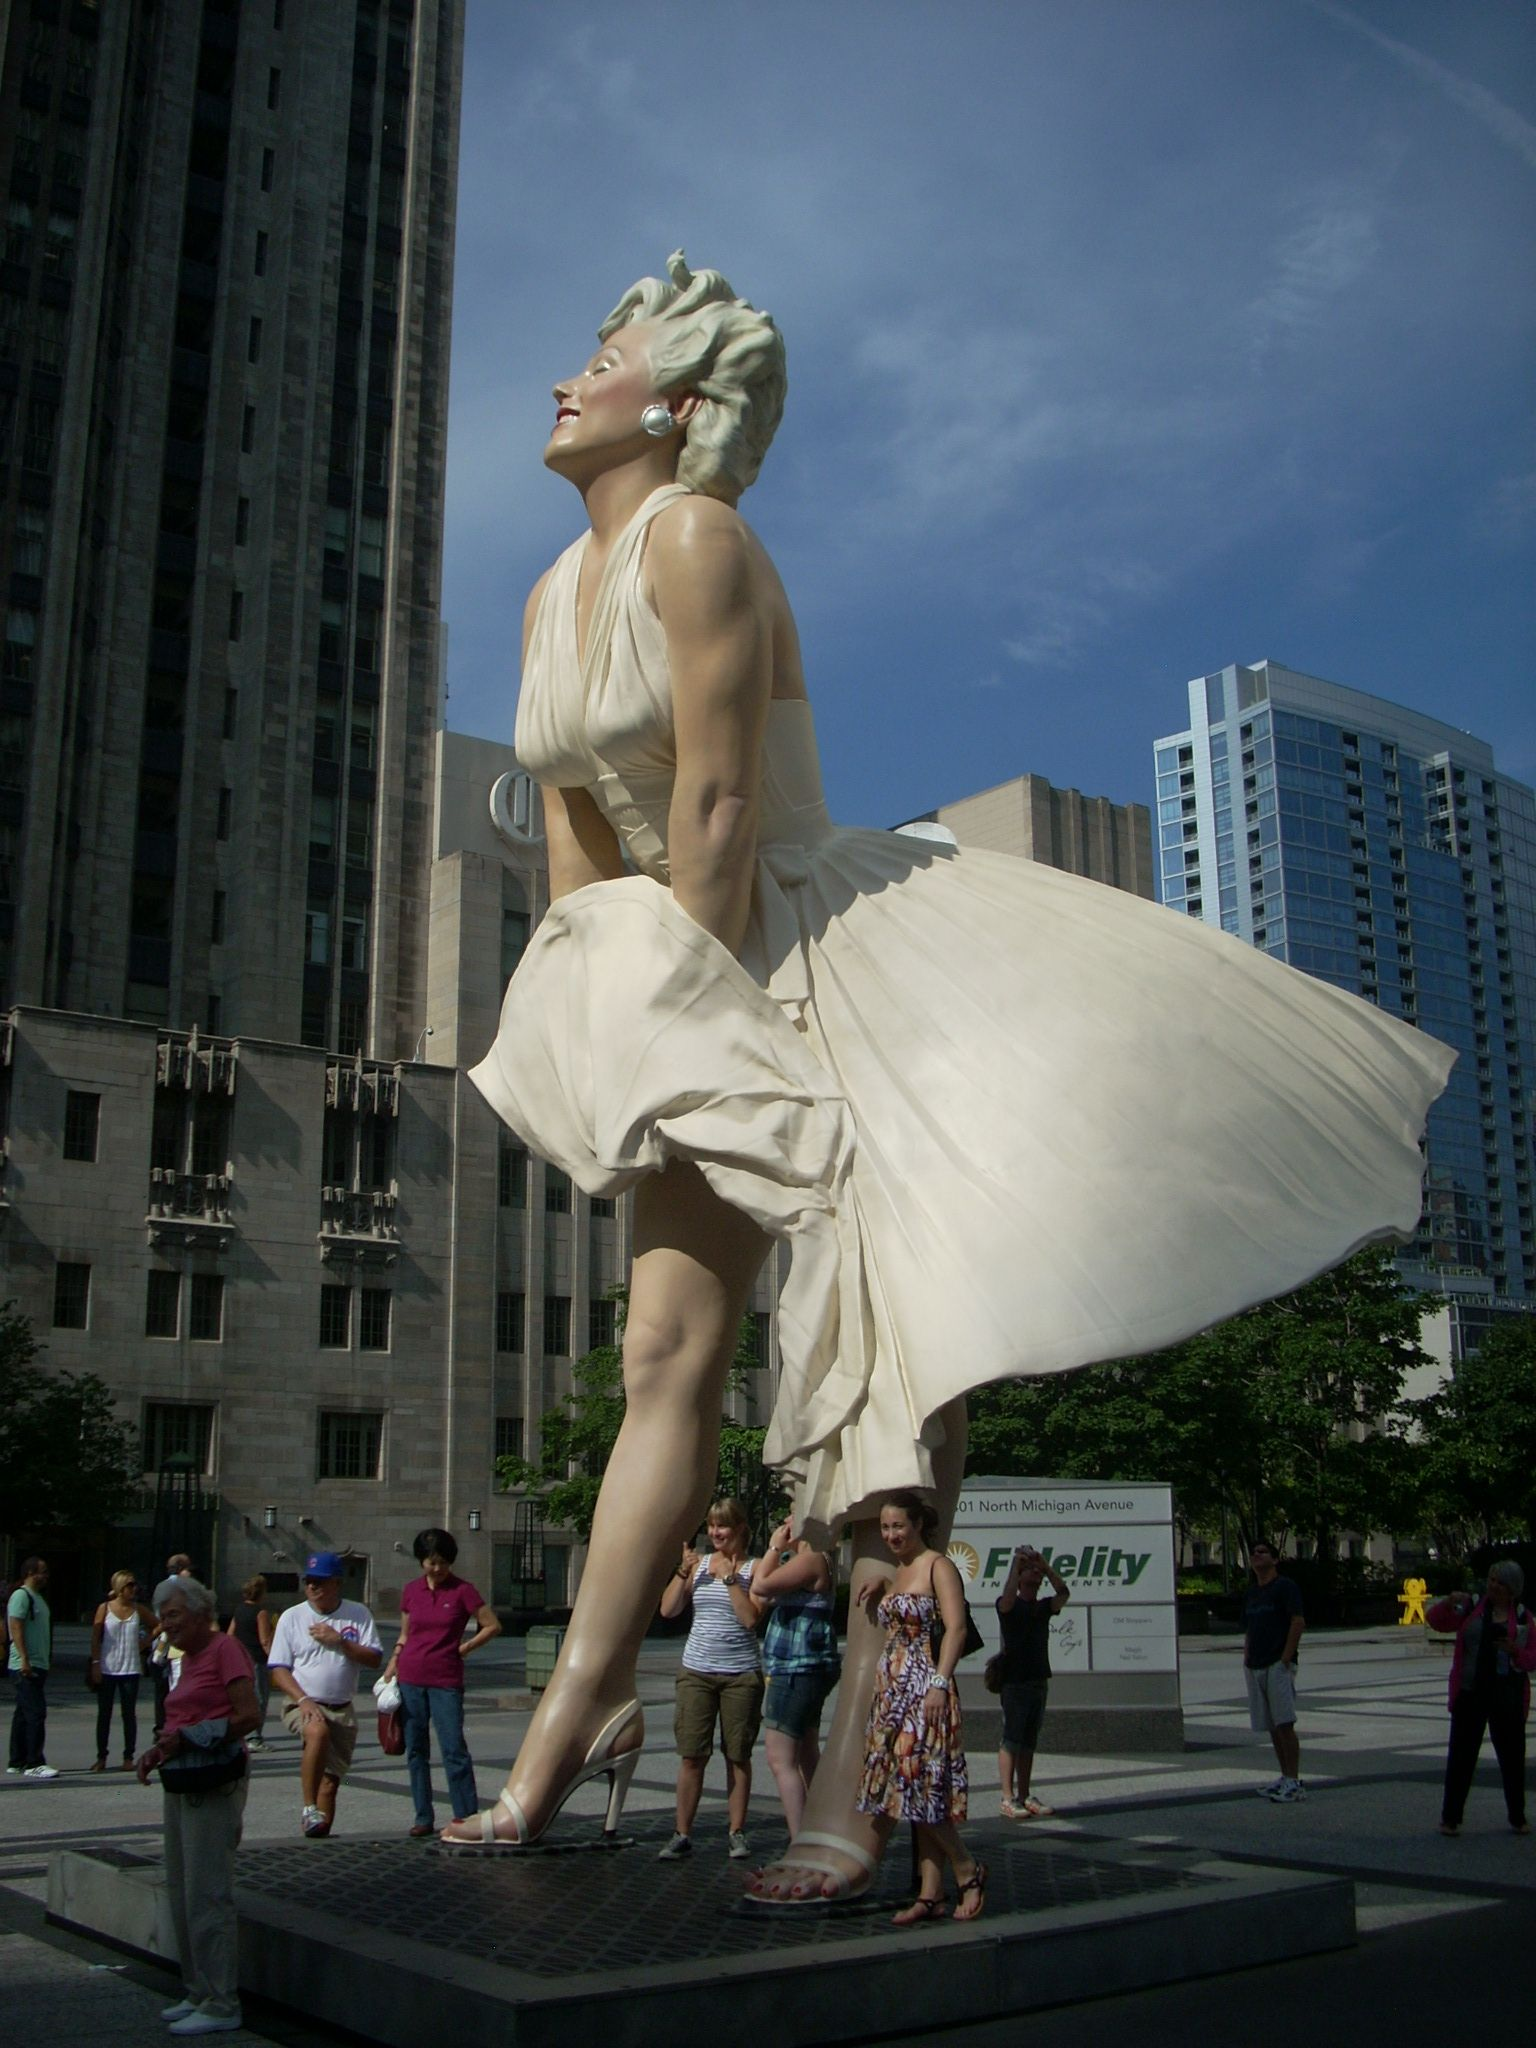 26 foot statue of Marilyn Monroe in Chicago.